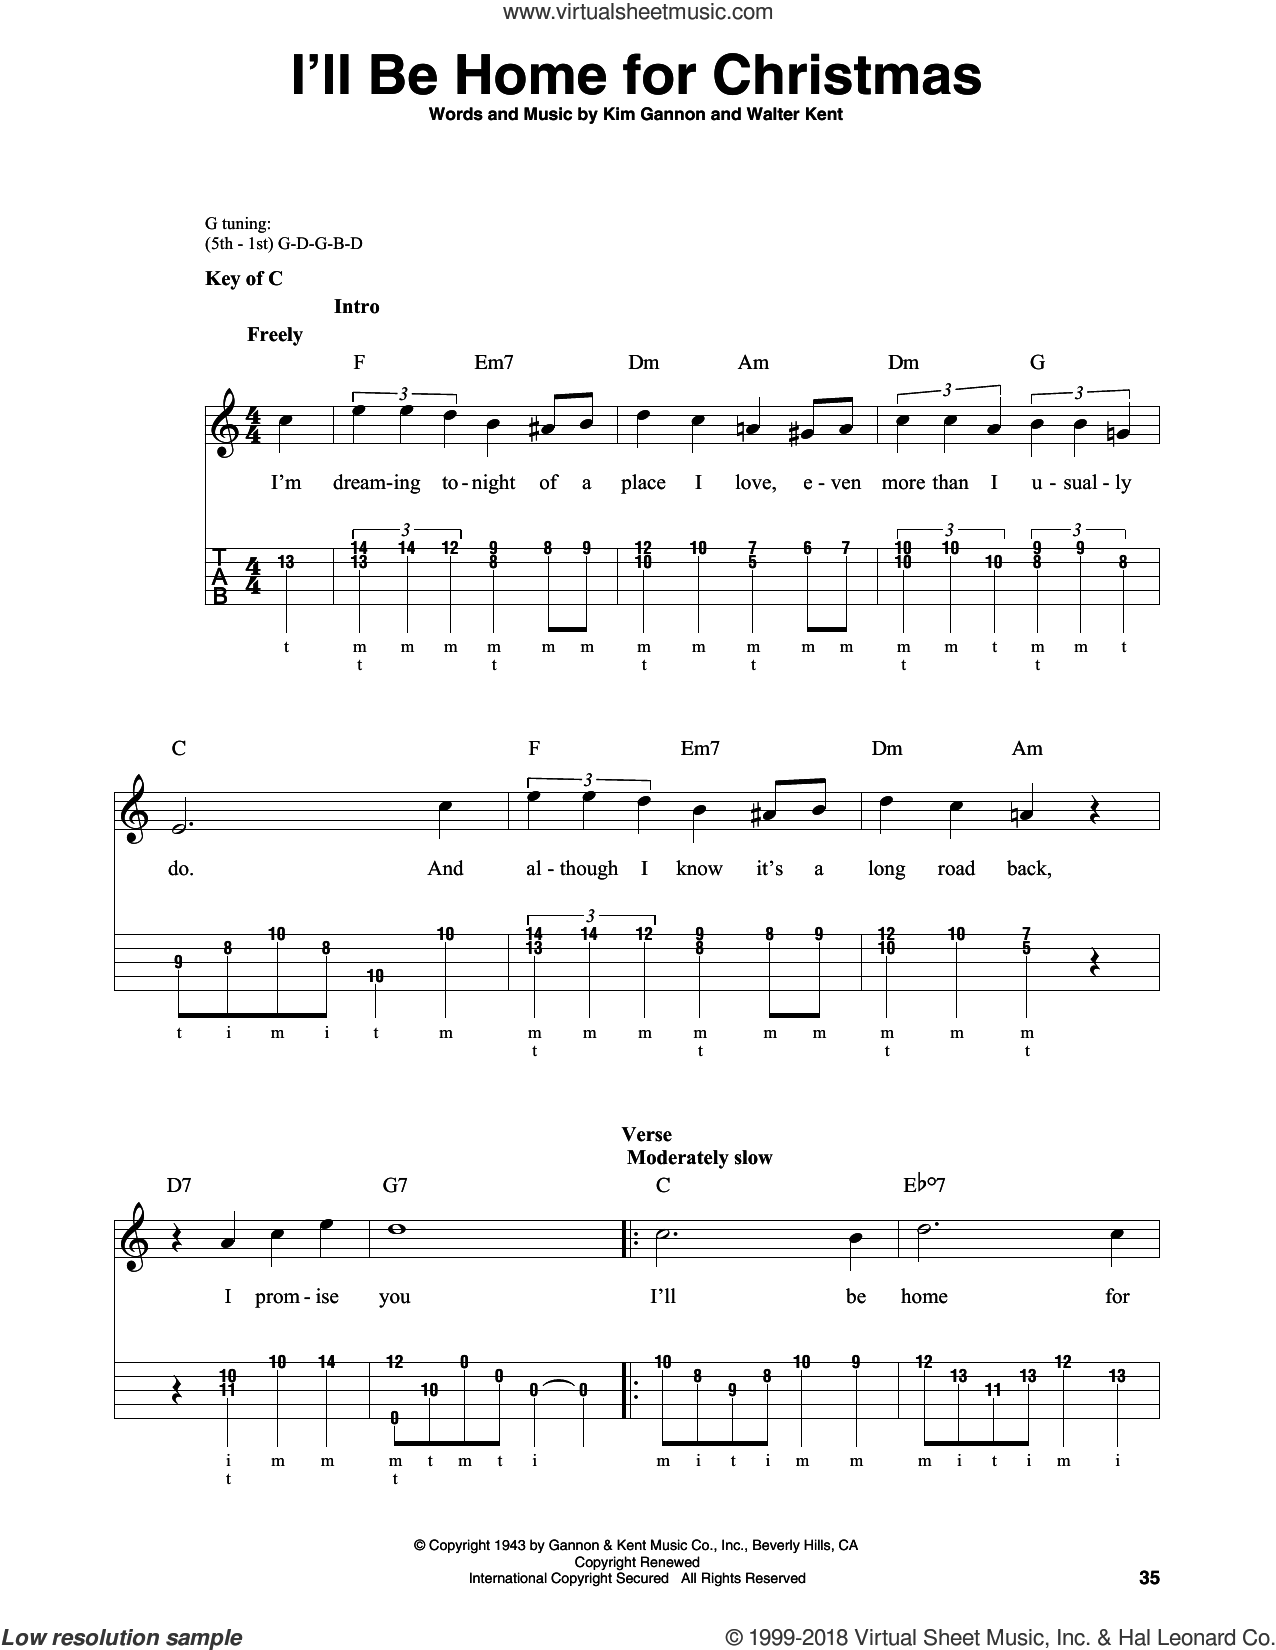 I'll Be Home For Christmas sheet music for banjo solo by Bing Crosby, Kim Gannon and Walter Kent, intermediate skill level